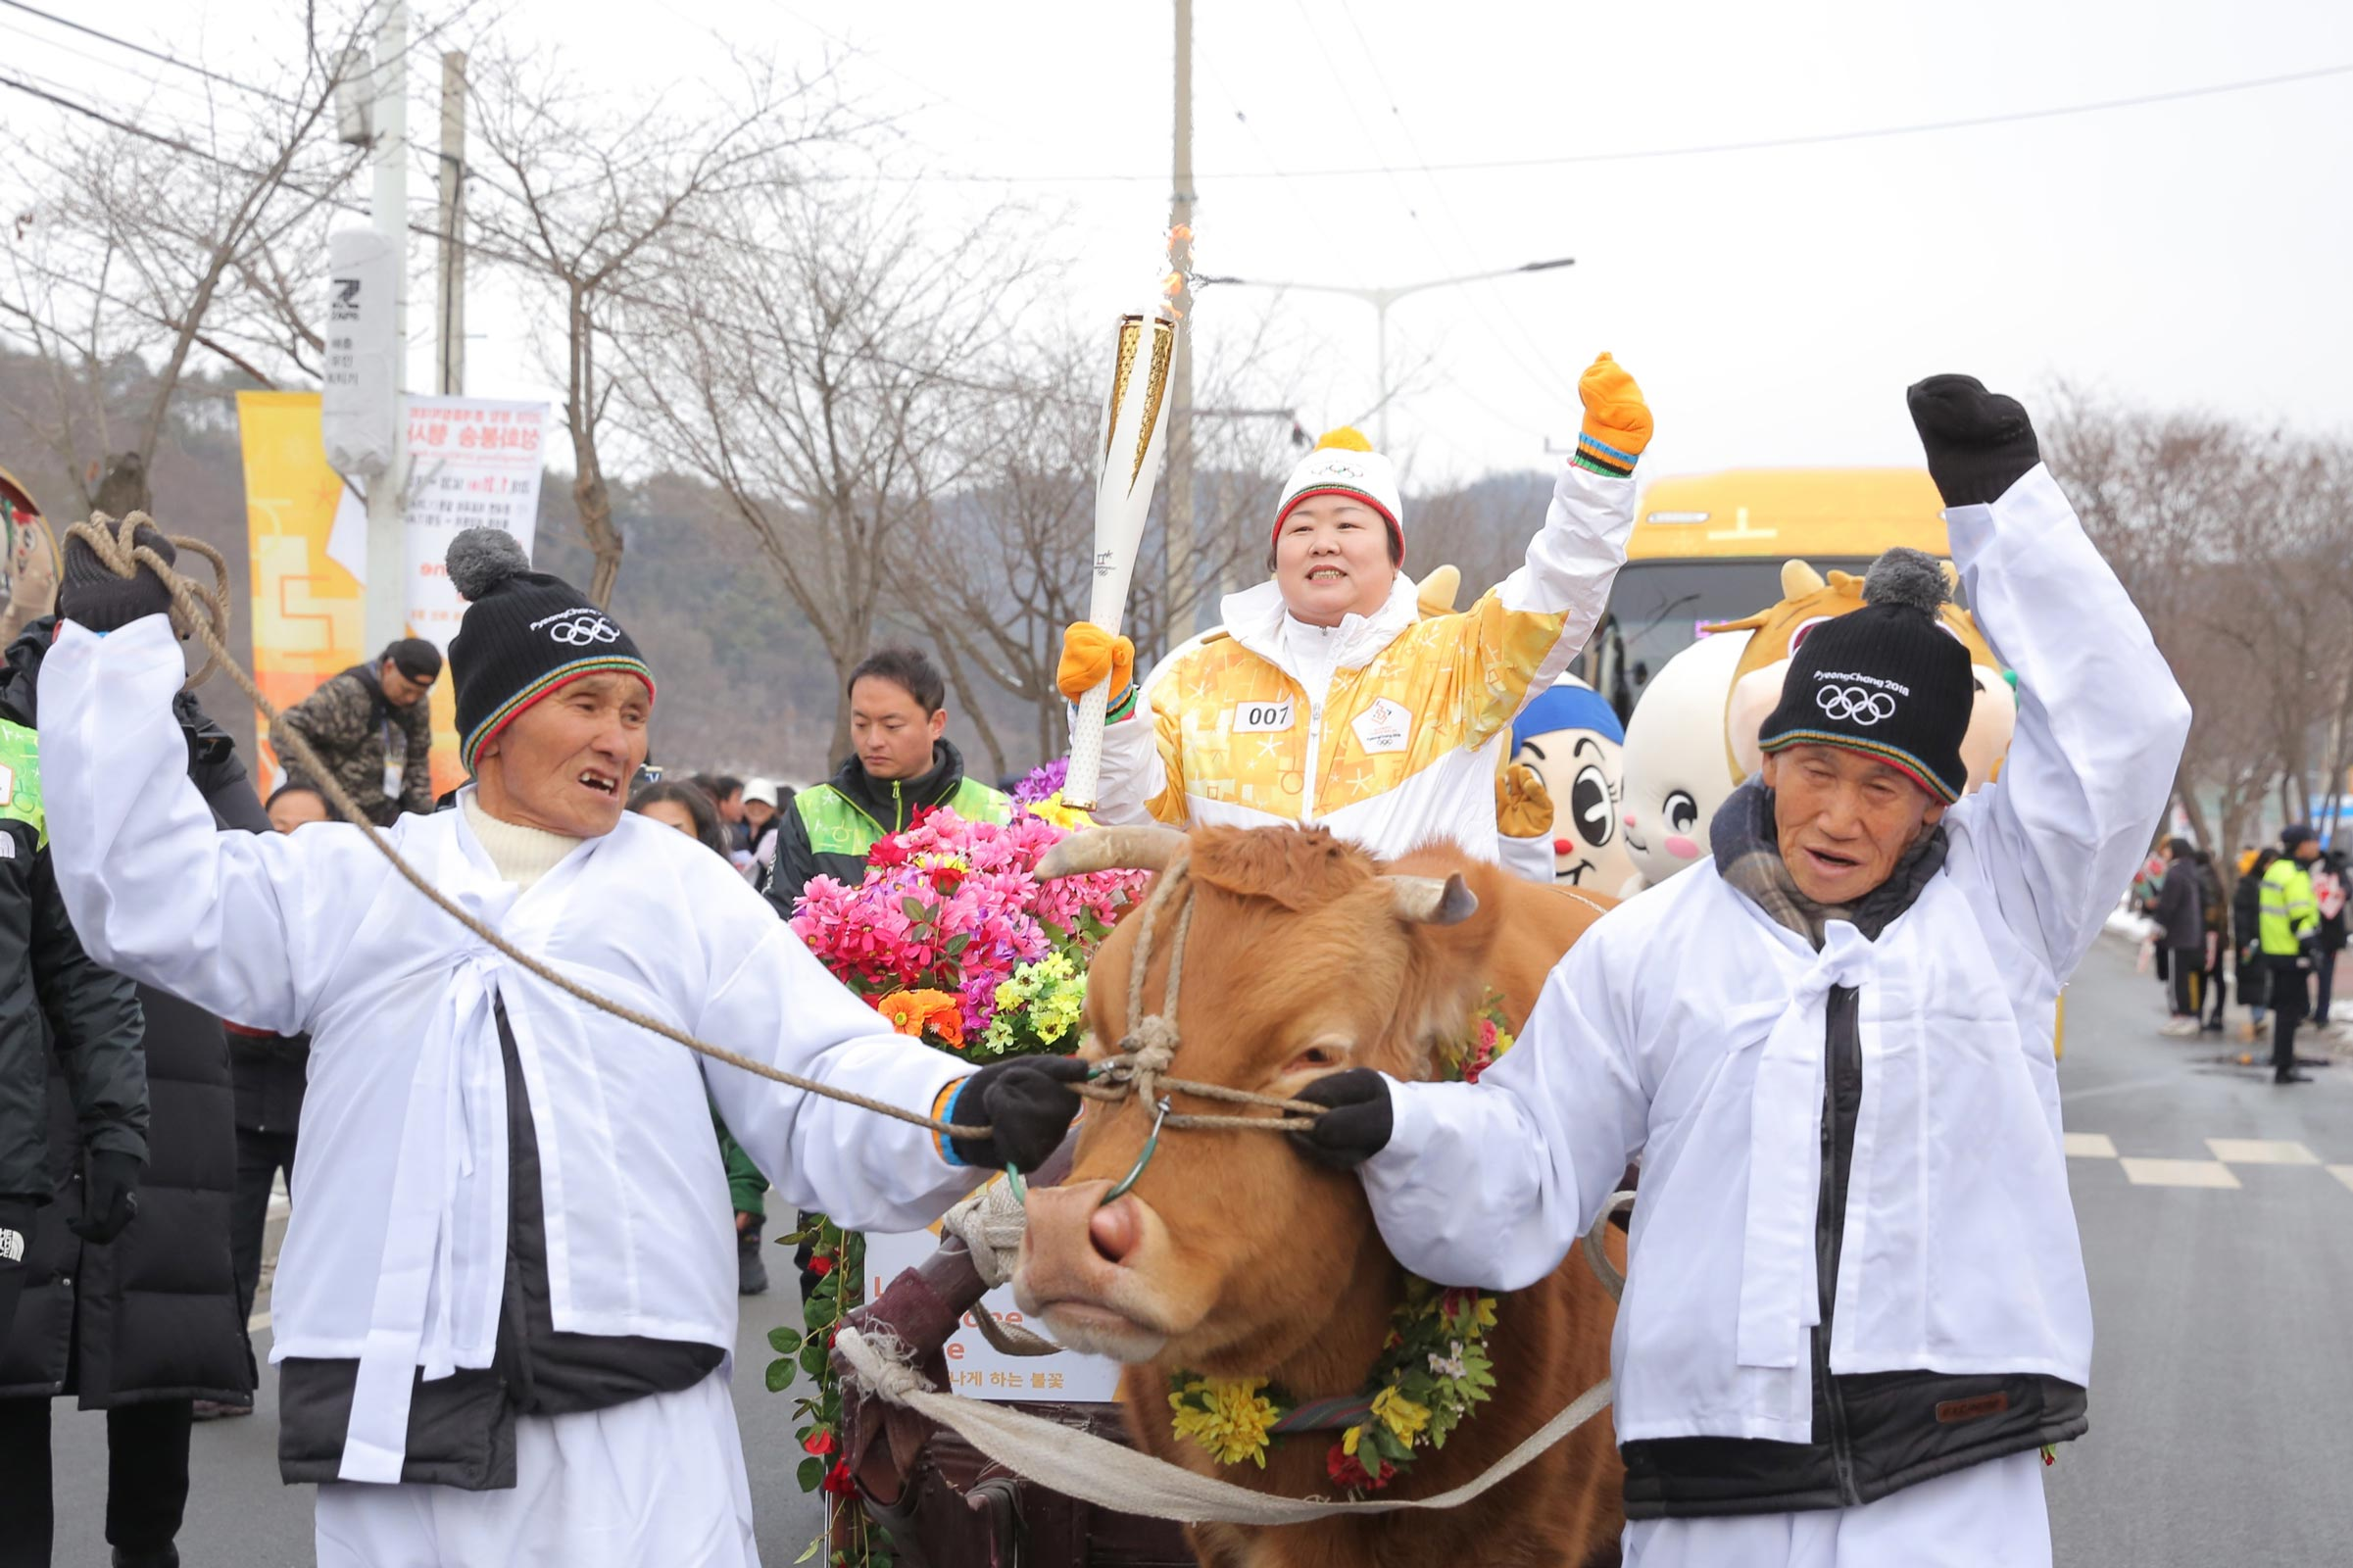 PyeongChang 2018 Olympic Torch Relay - Day 92